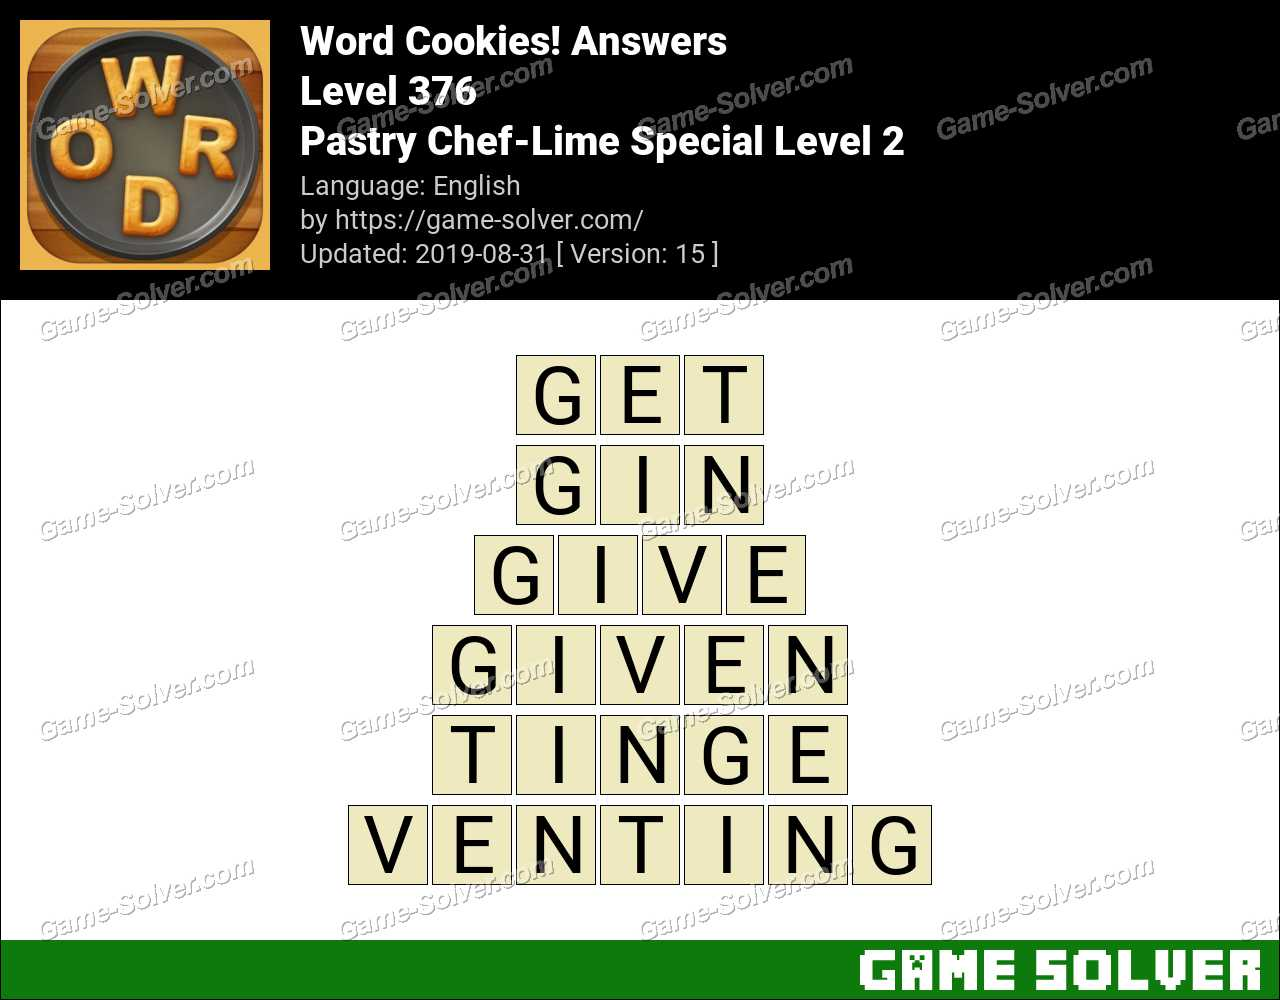 Word Cookies Pastry Chef-Lime Special Level 2 Answers